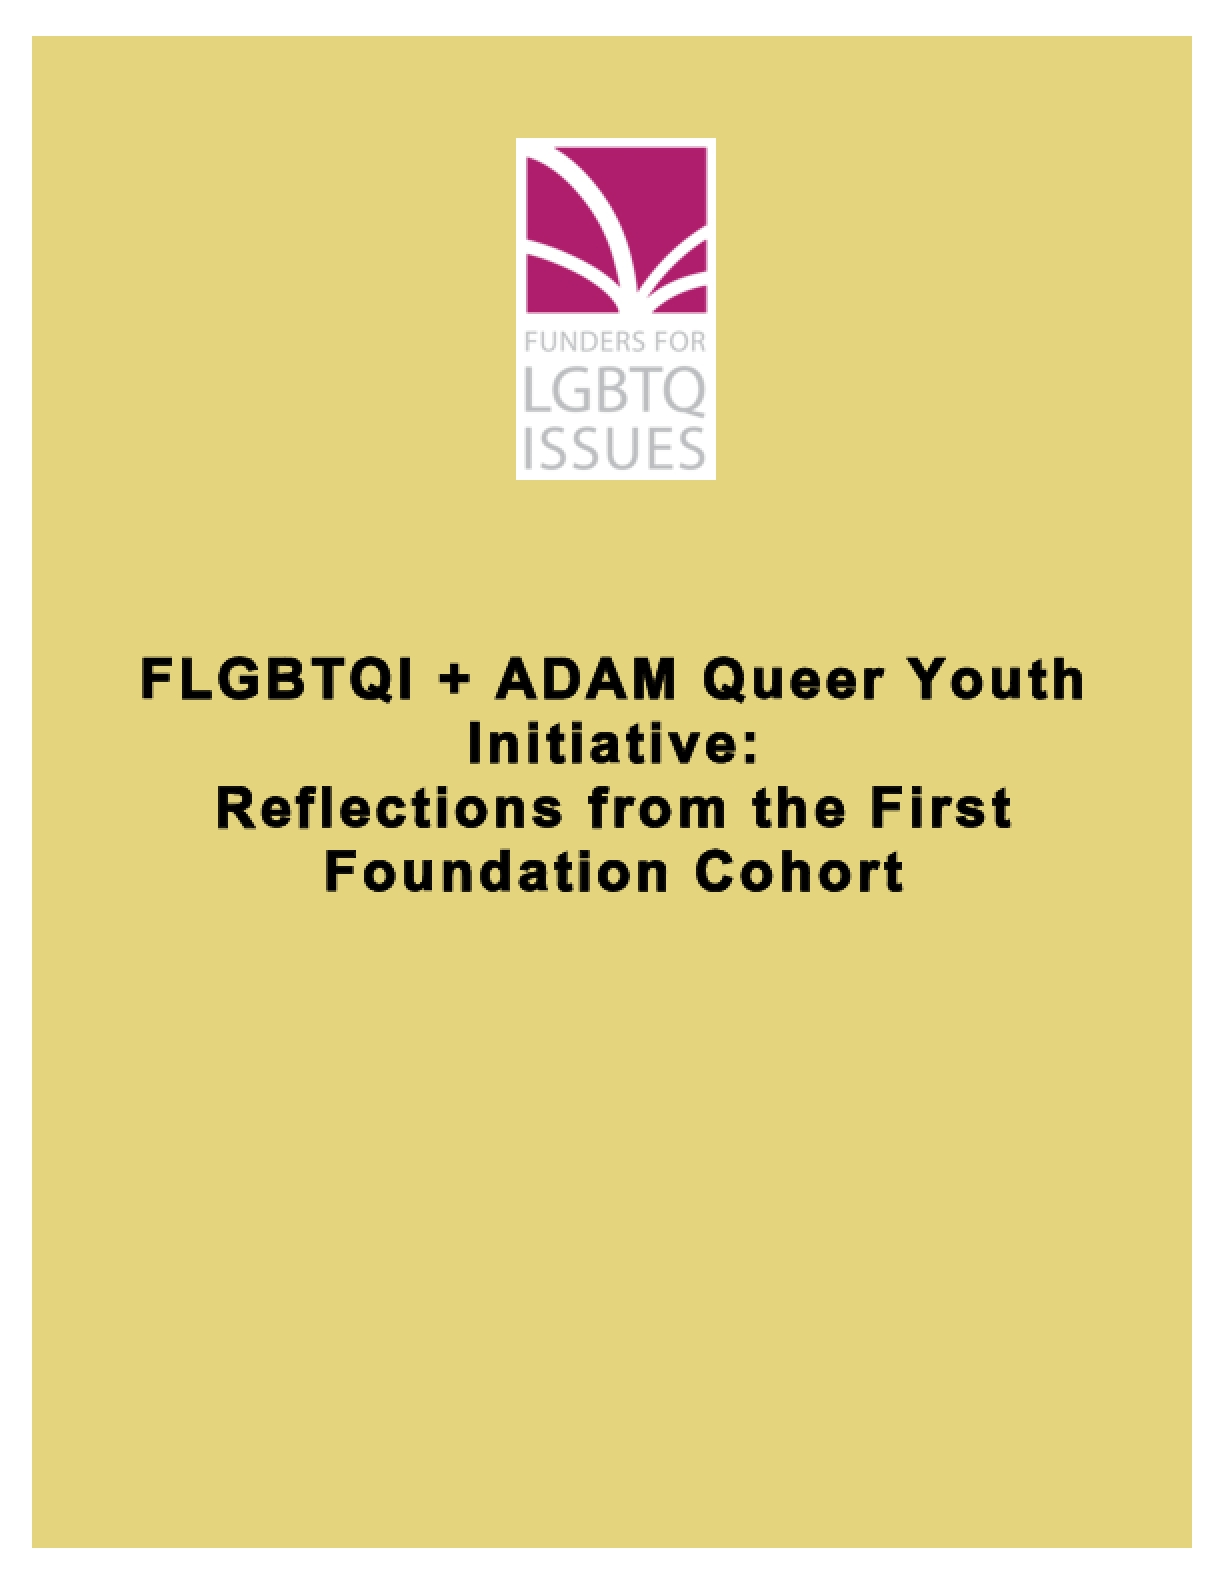 FLGBTQI + ADAM Queer Youth Initiative: Reflections from the First Foundation Cohort